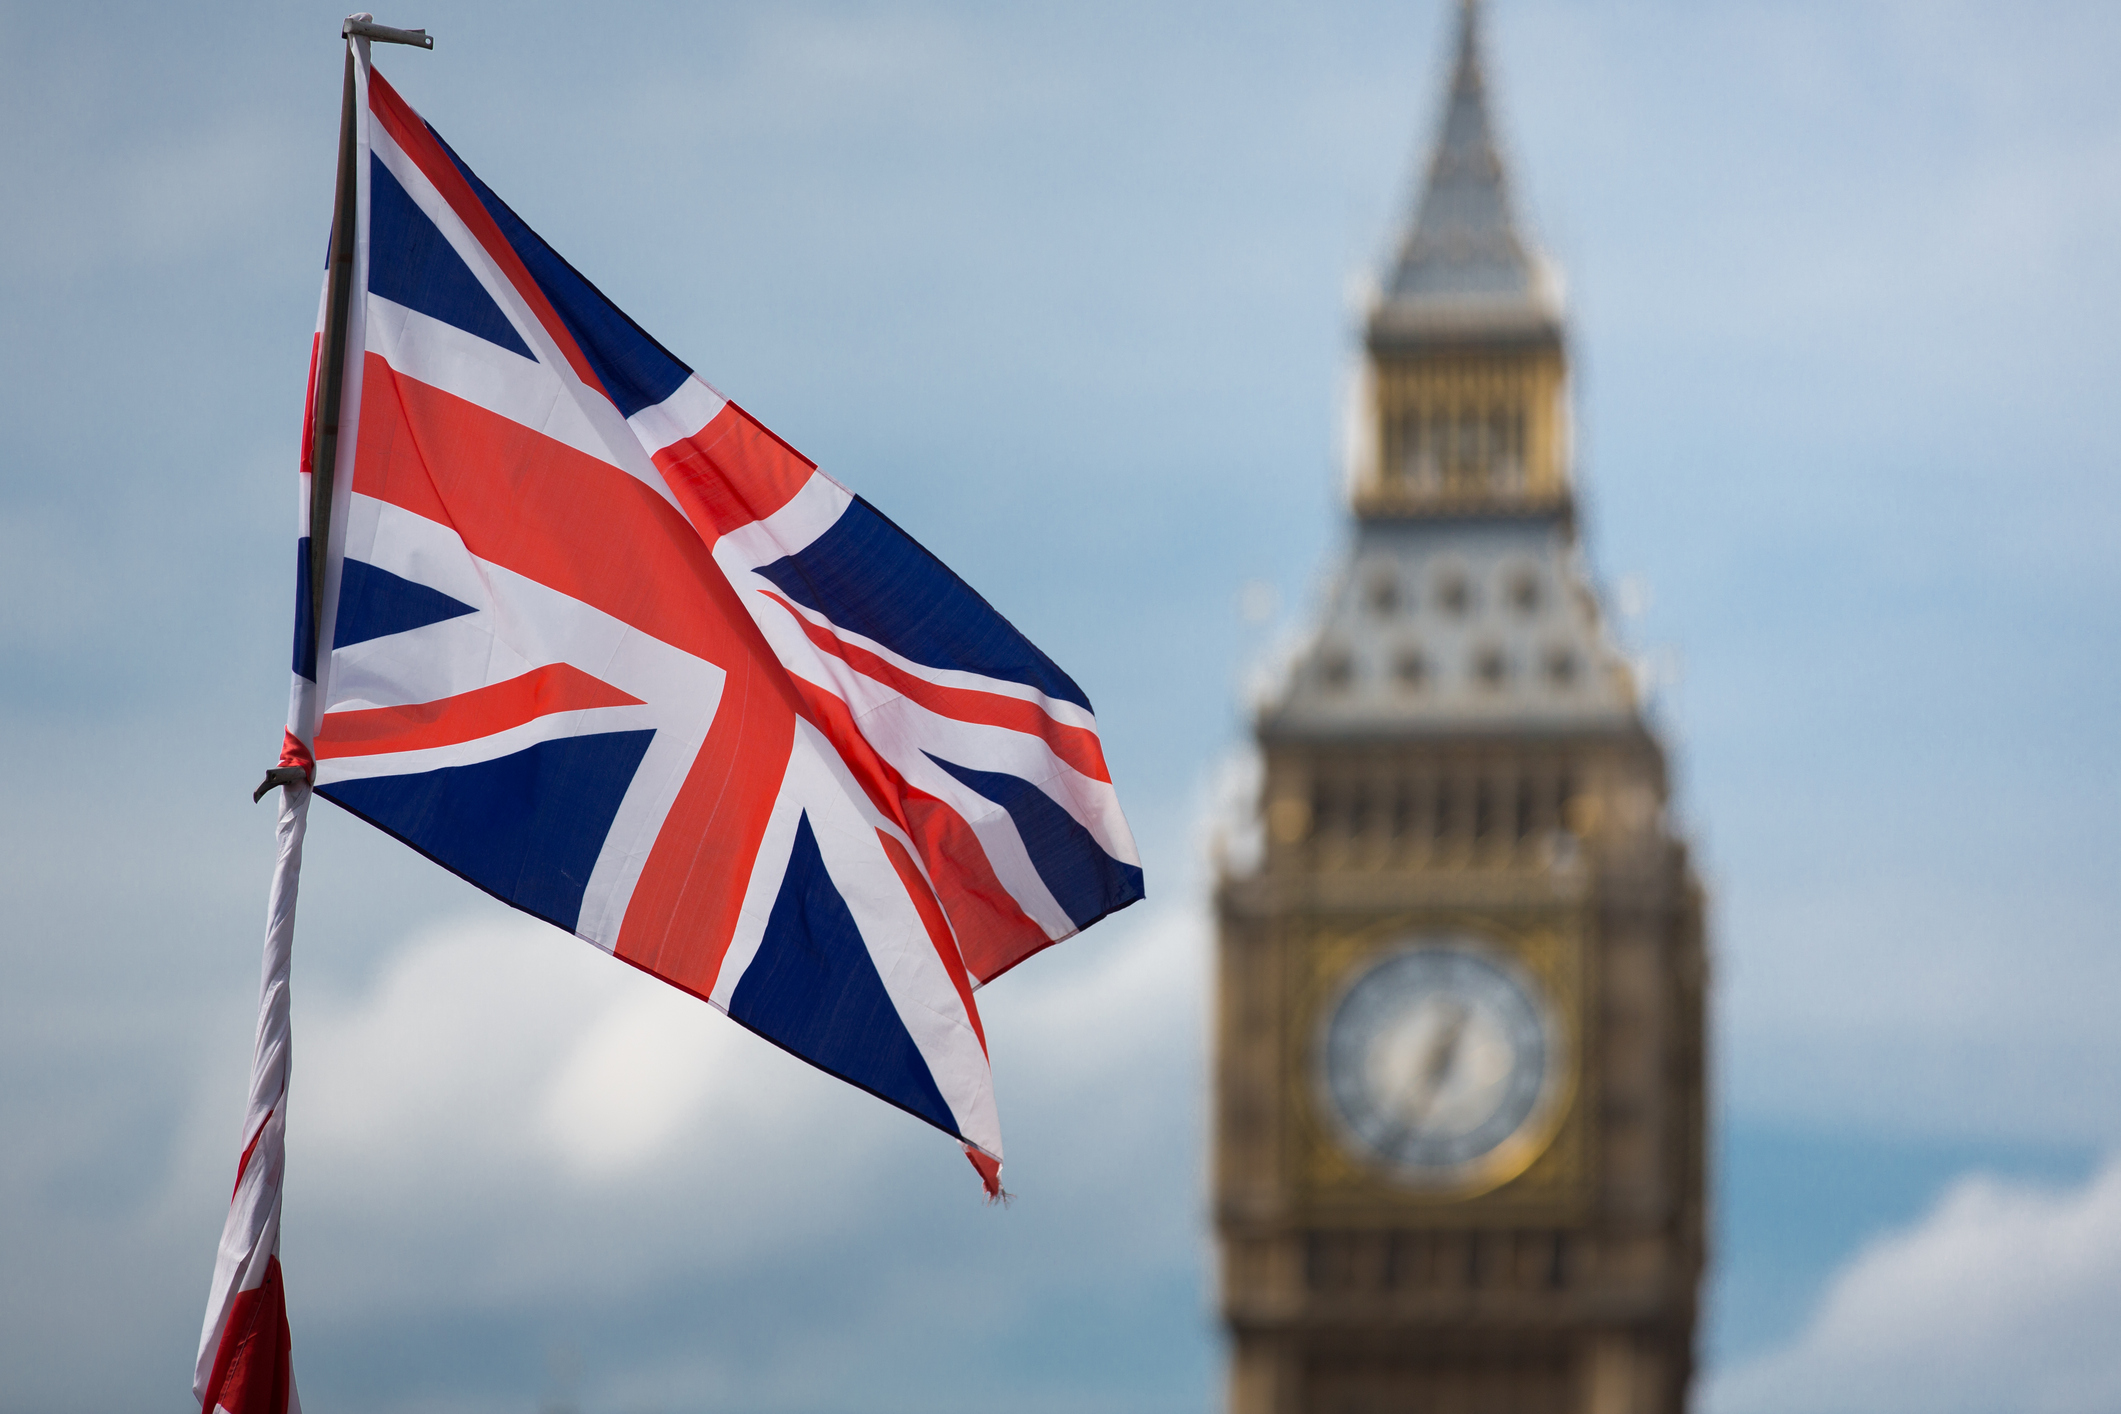 Big Ben and a Union Jack flag